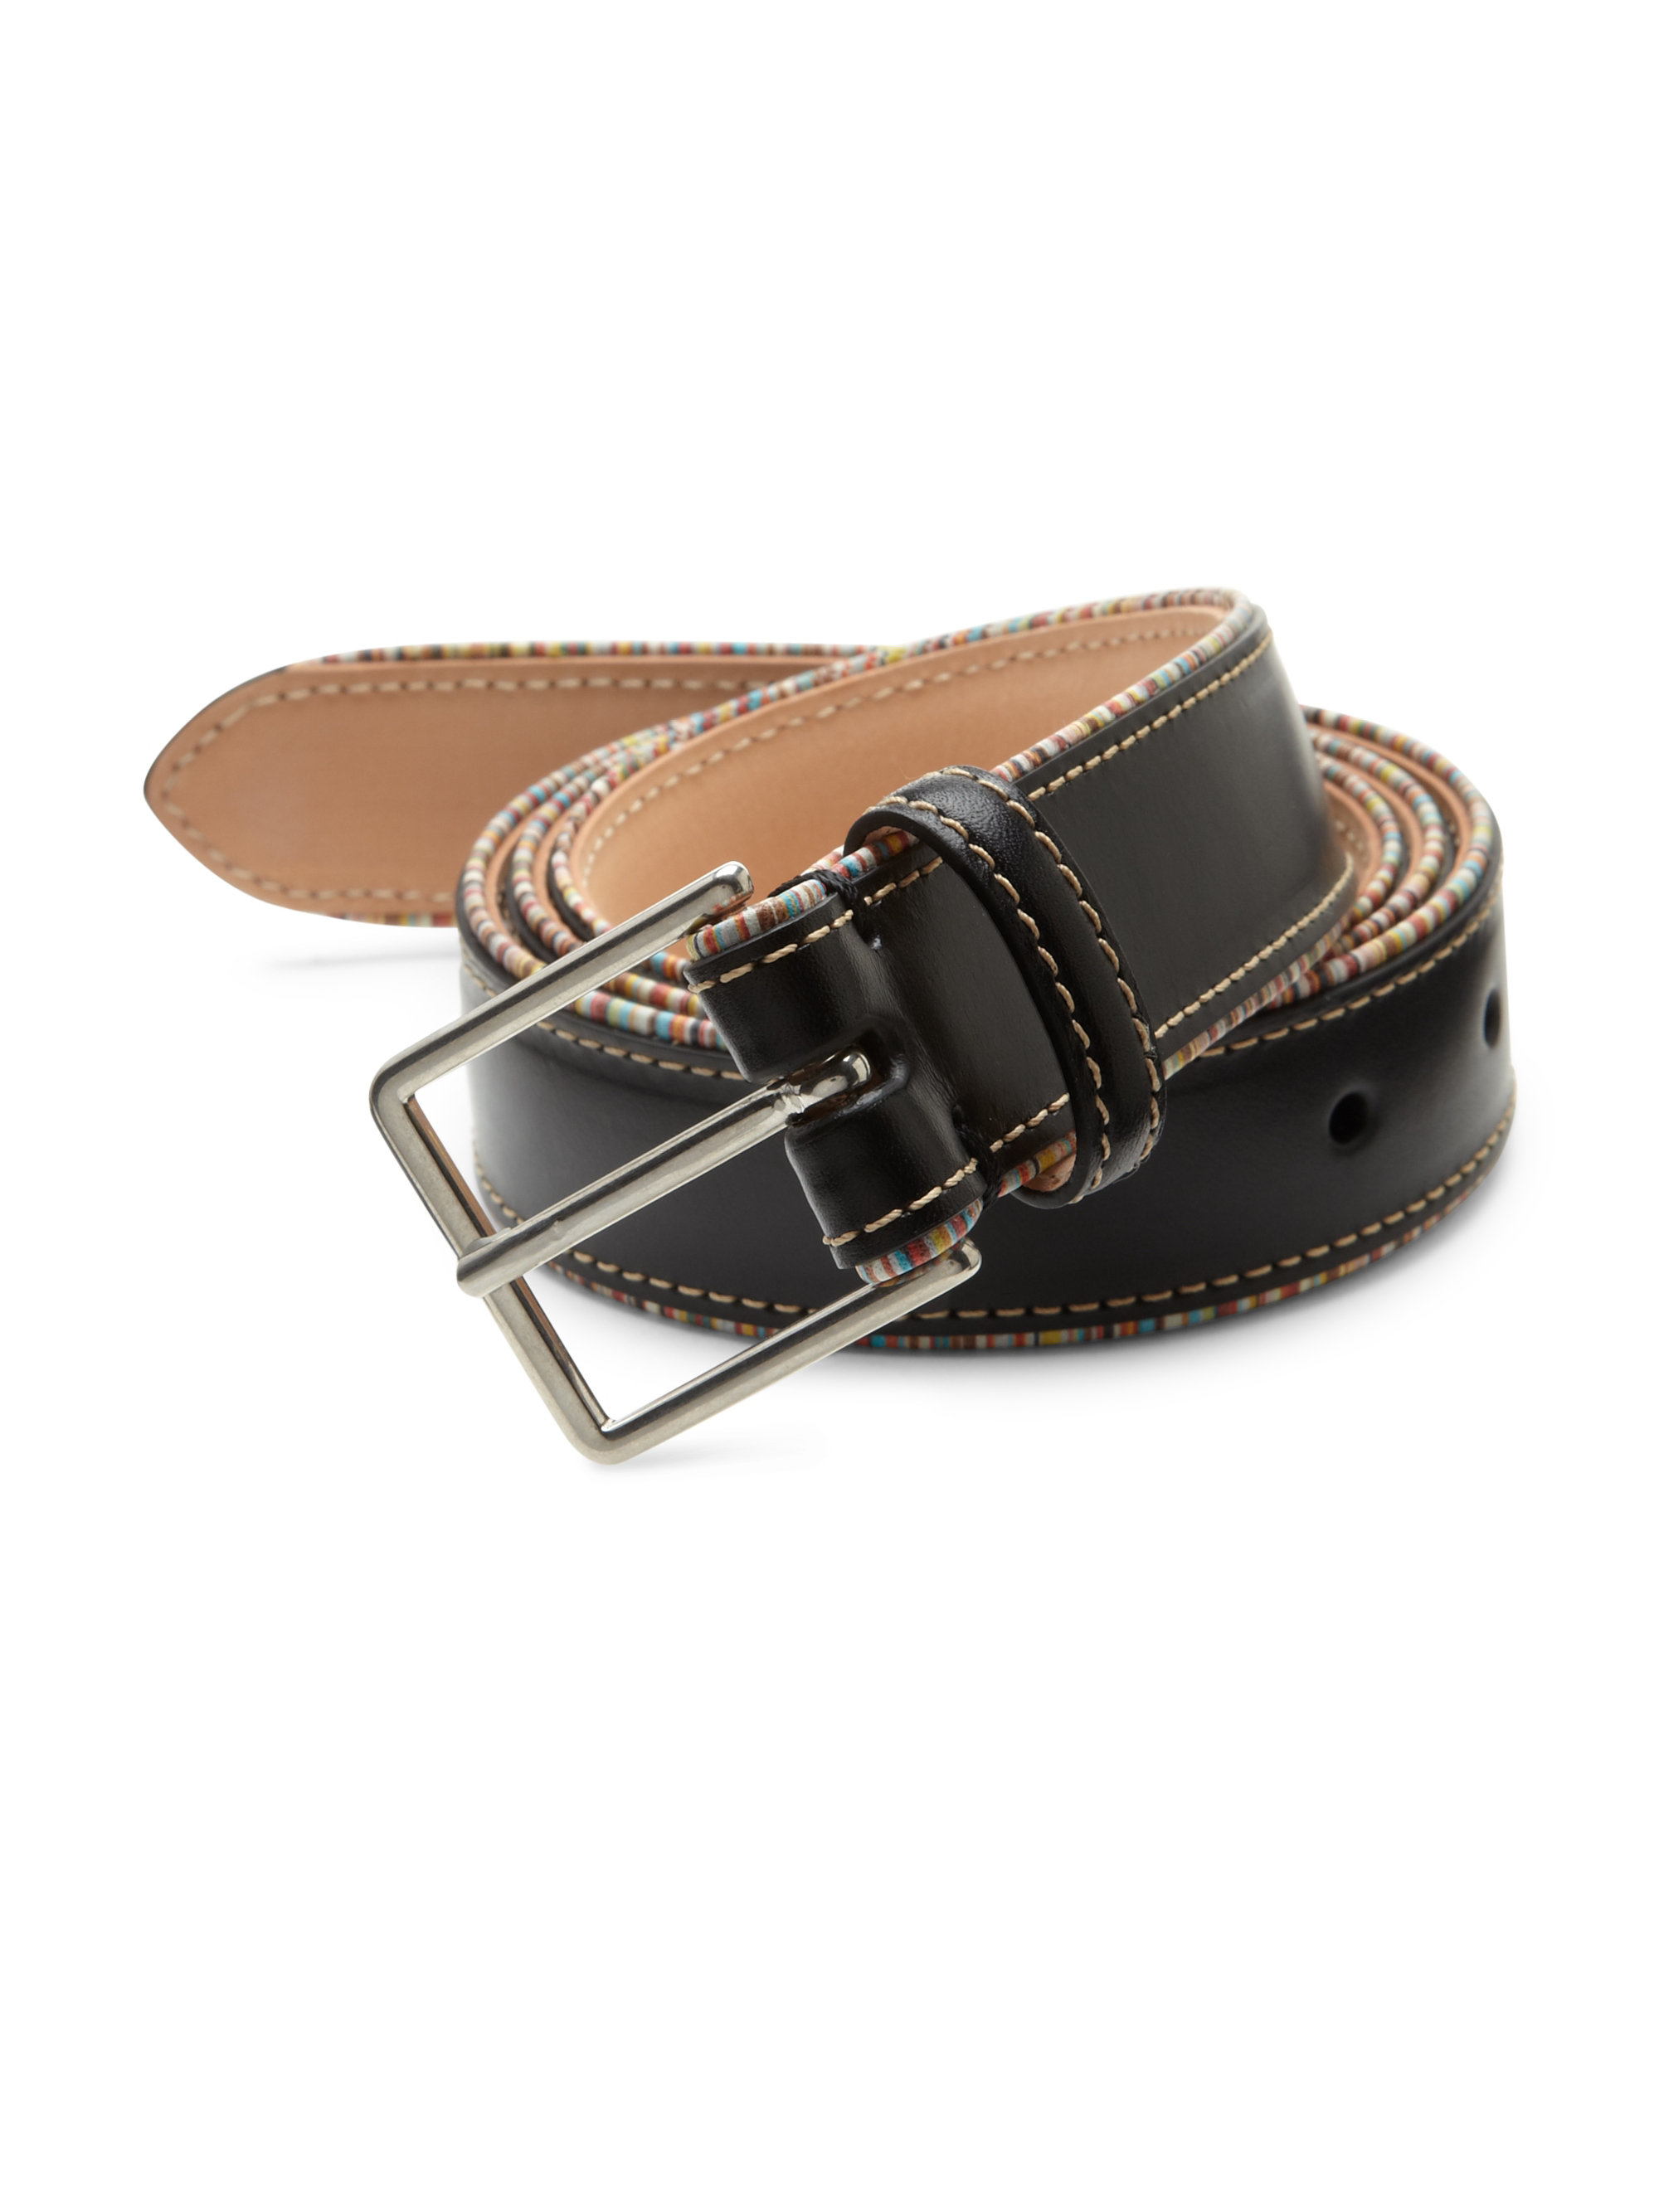 paul smith signature striped leather belt in black for